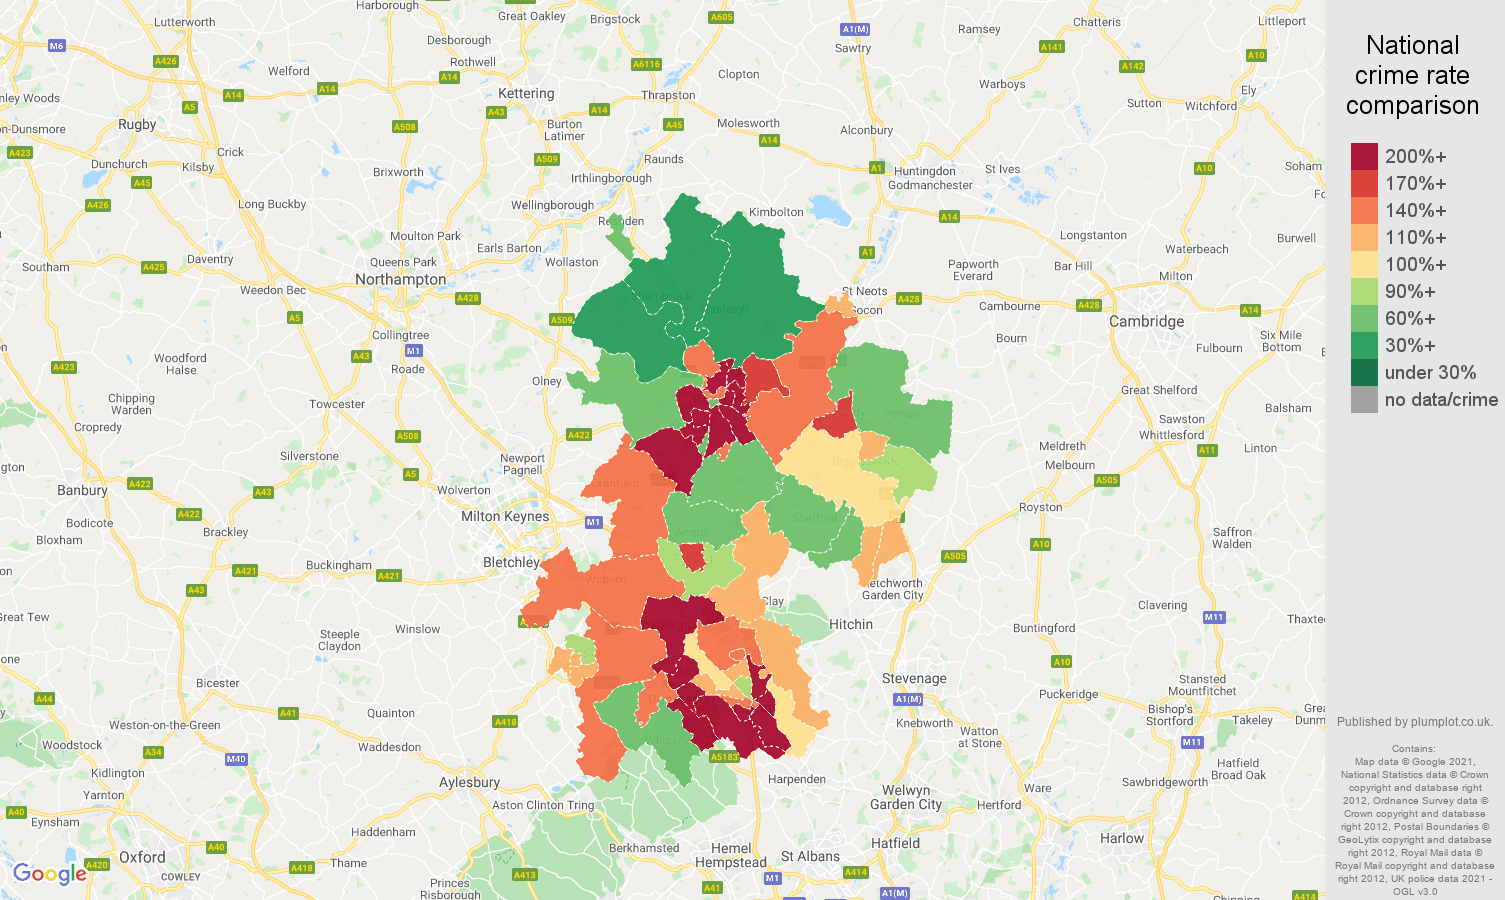 Bedfordshire vehicle crime rate comparison map